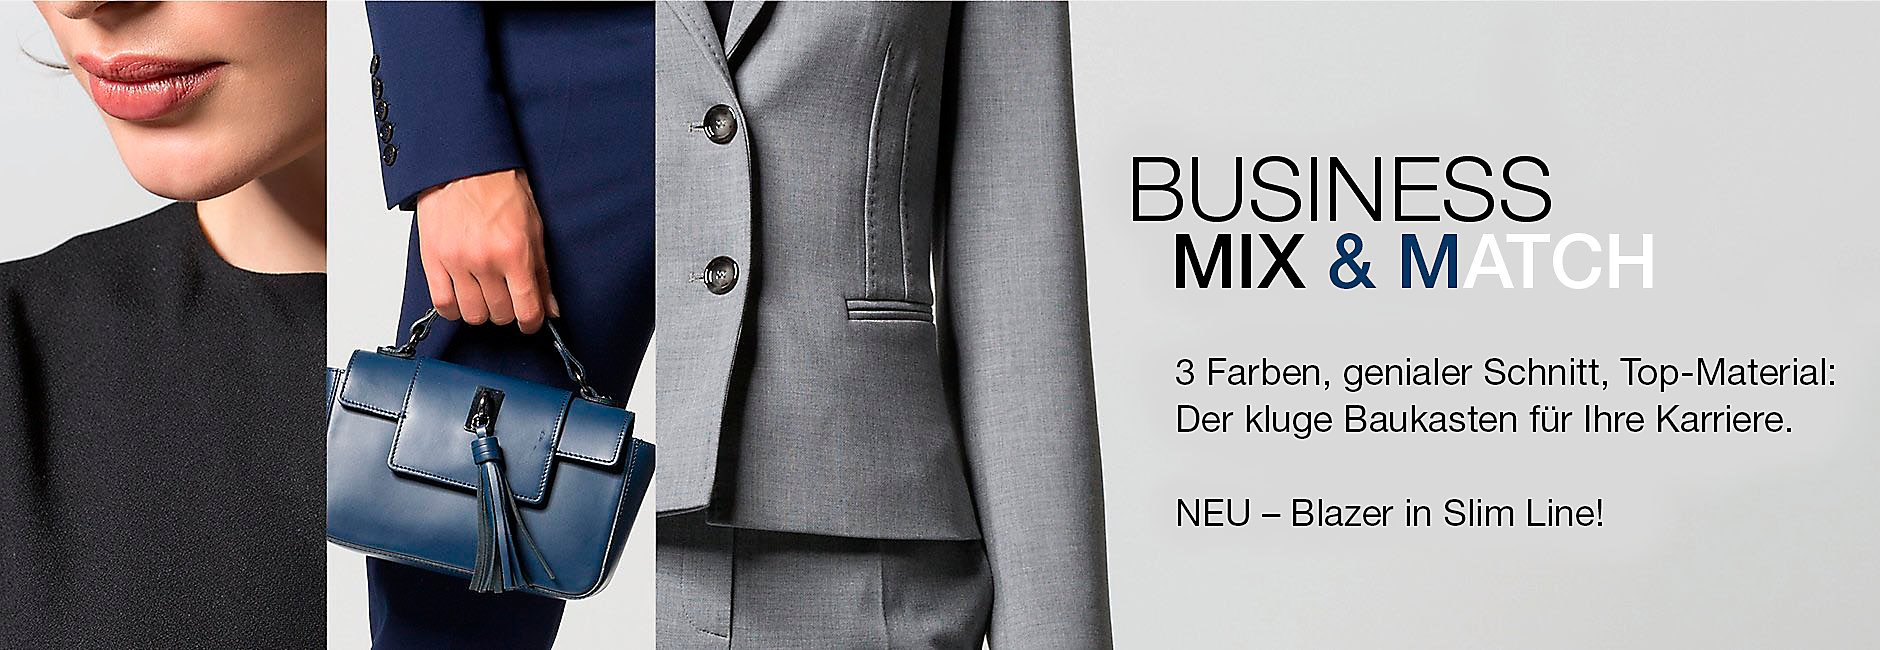 Business Mix & Match